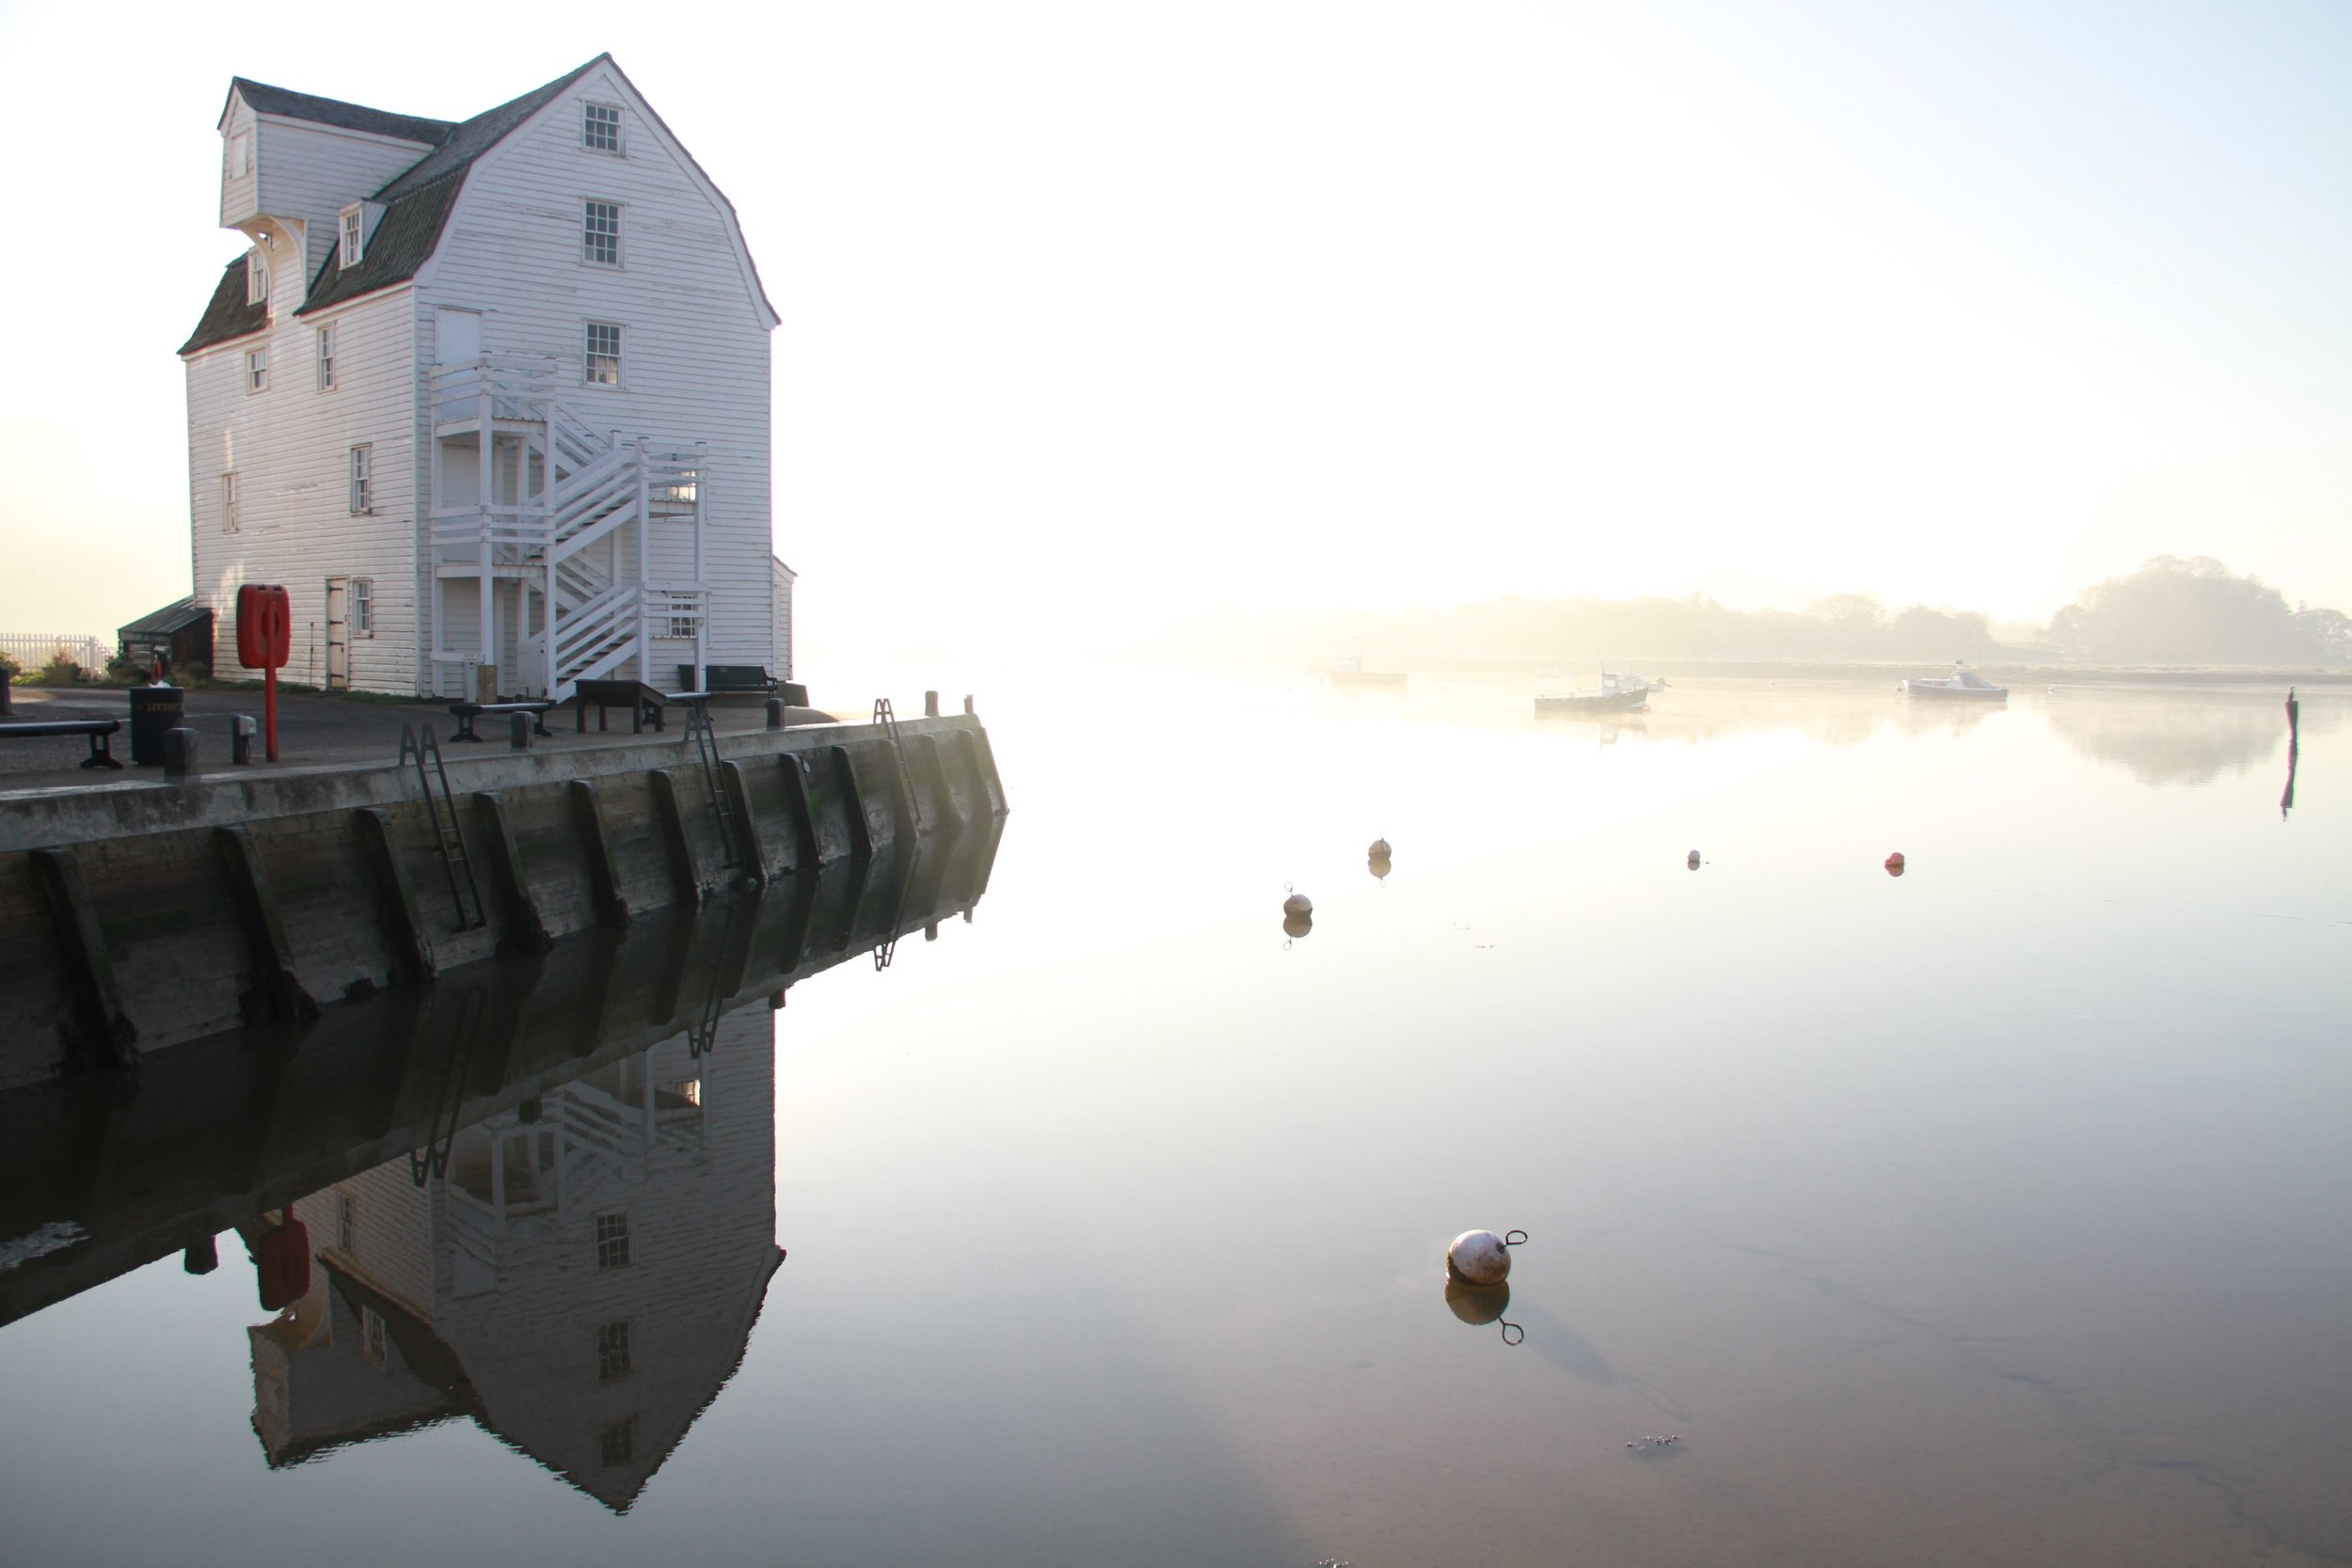 The Tide Mill.